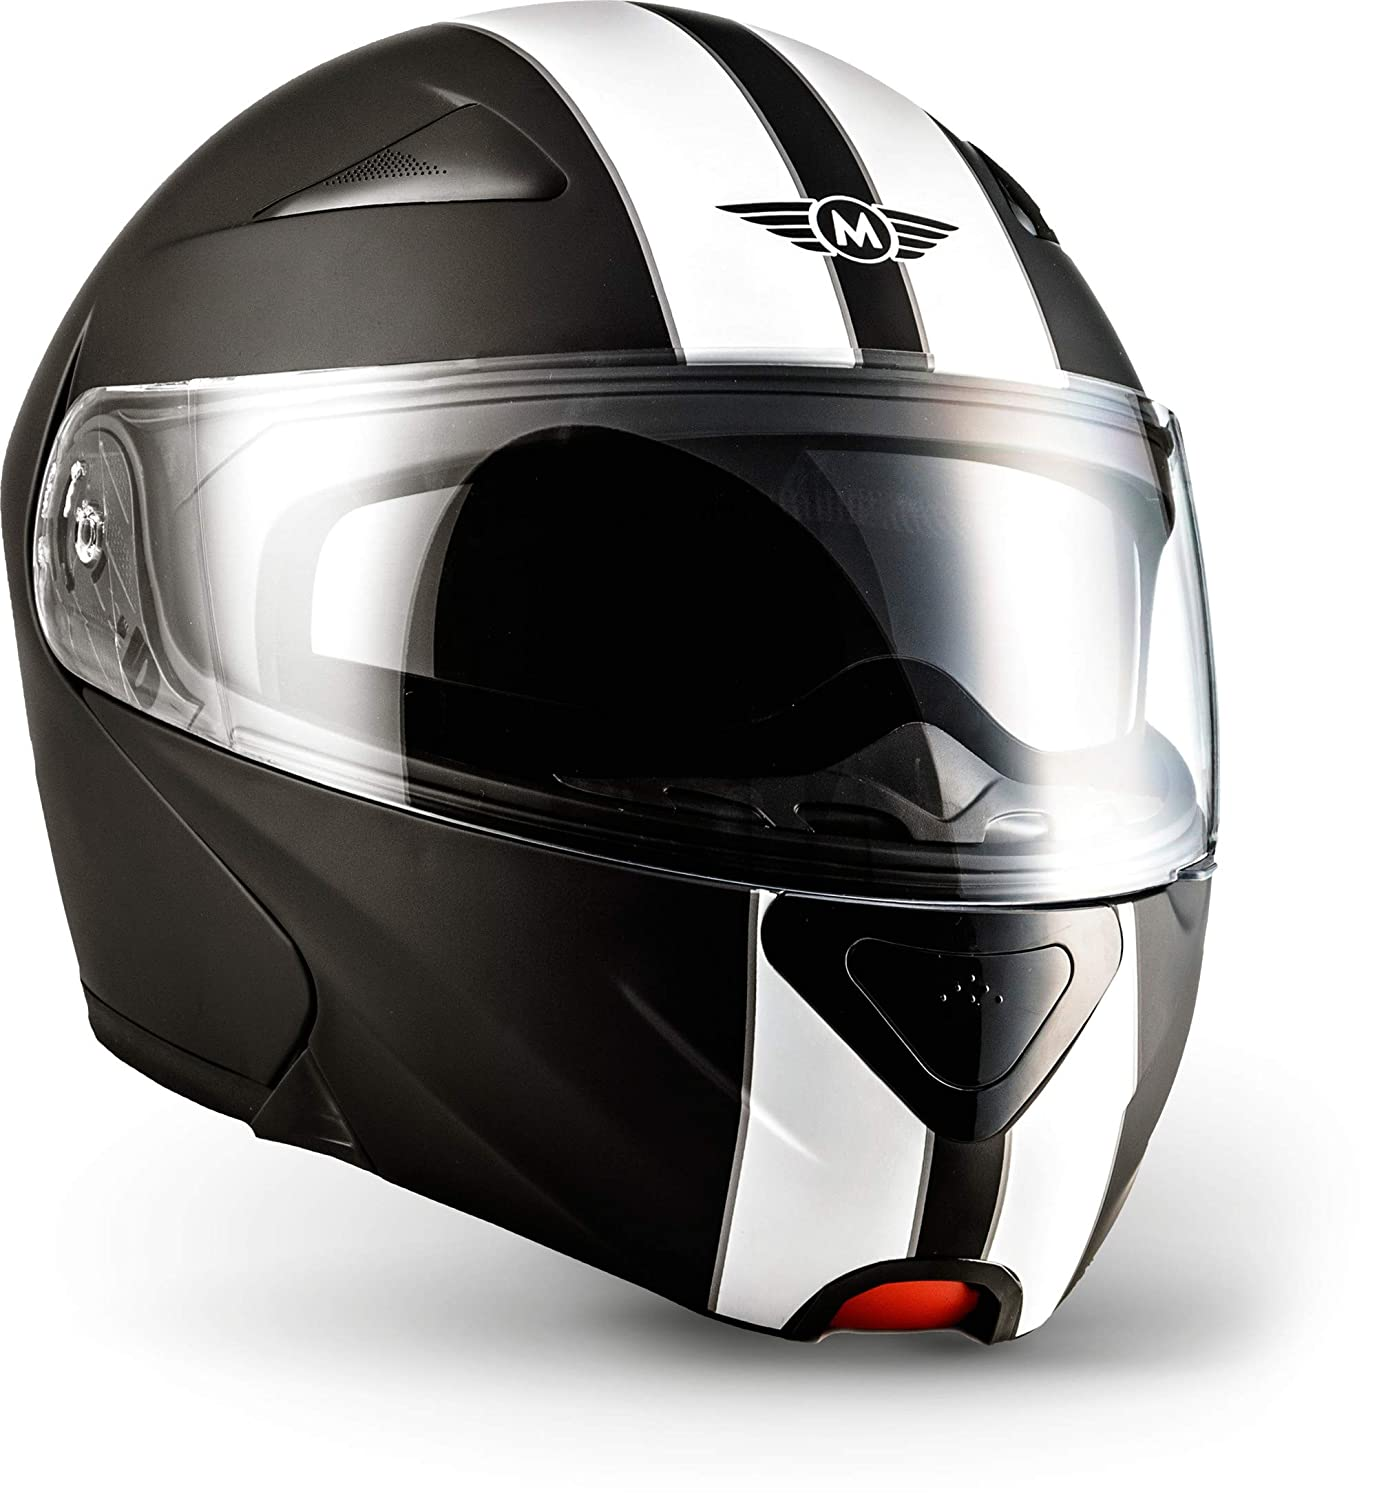 Amazon.es: Moto Helmets F19 Racing Botes de casco de scooter Casco Cruiser Casco Modular de casco de Flip Up de casco Roller de casco - Casco integral de ...